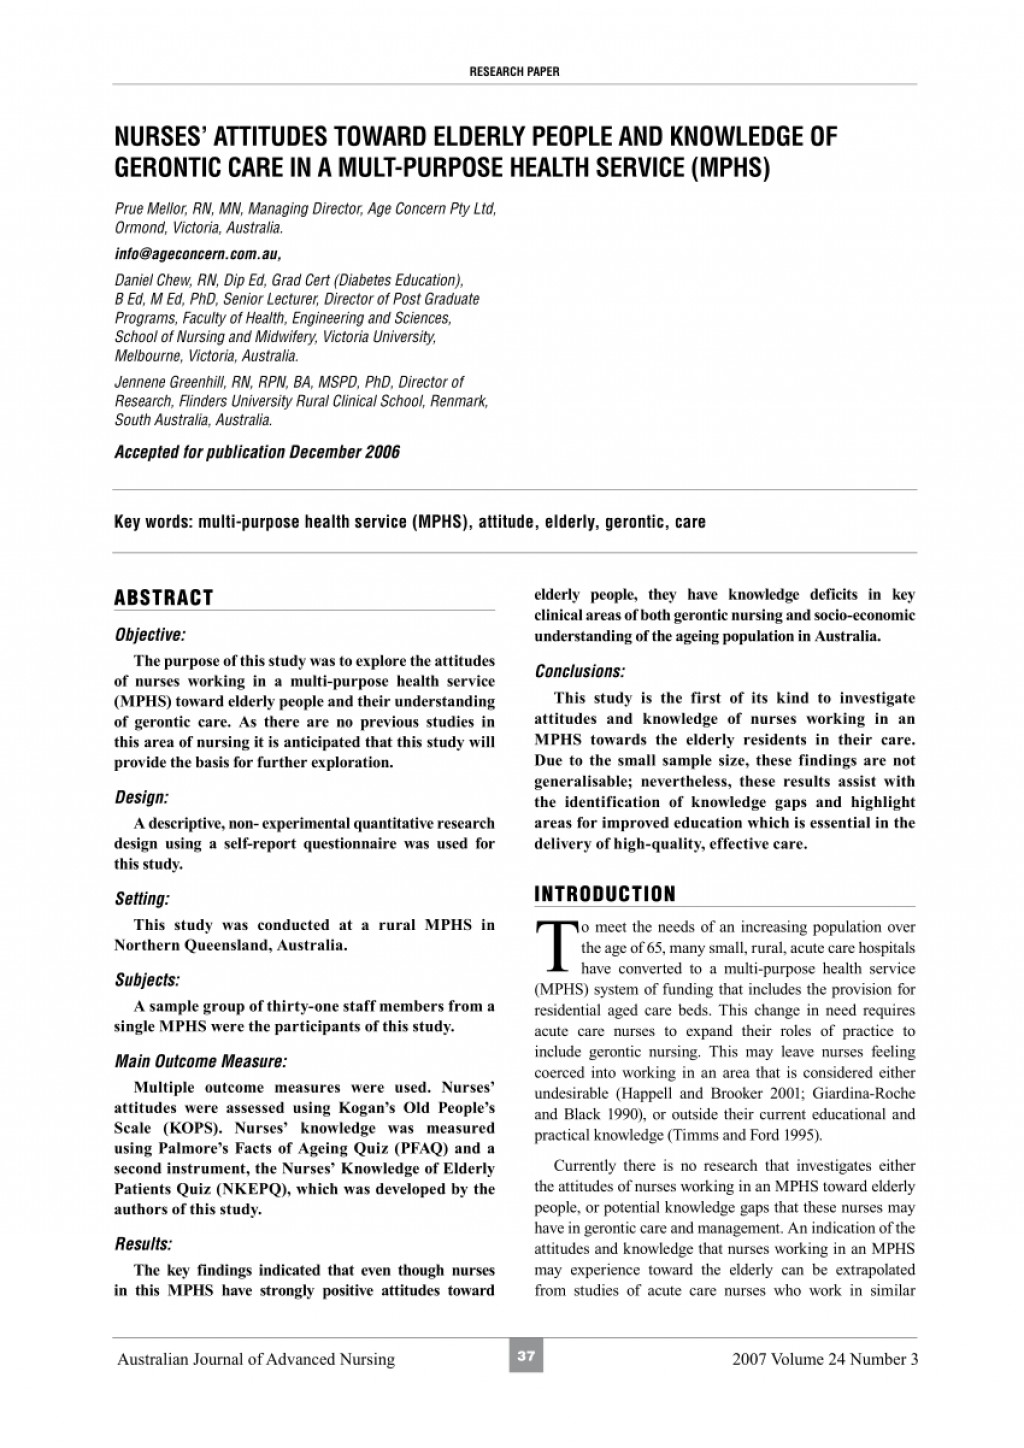 005 Largepreview Essay Example Awful Fake Pdf Generator Large